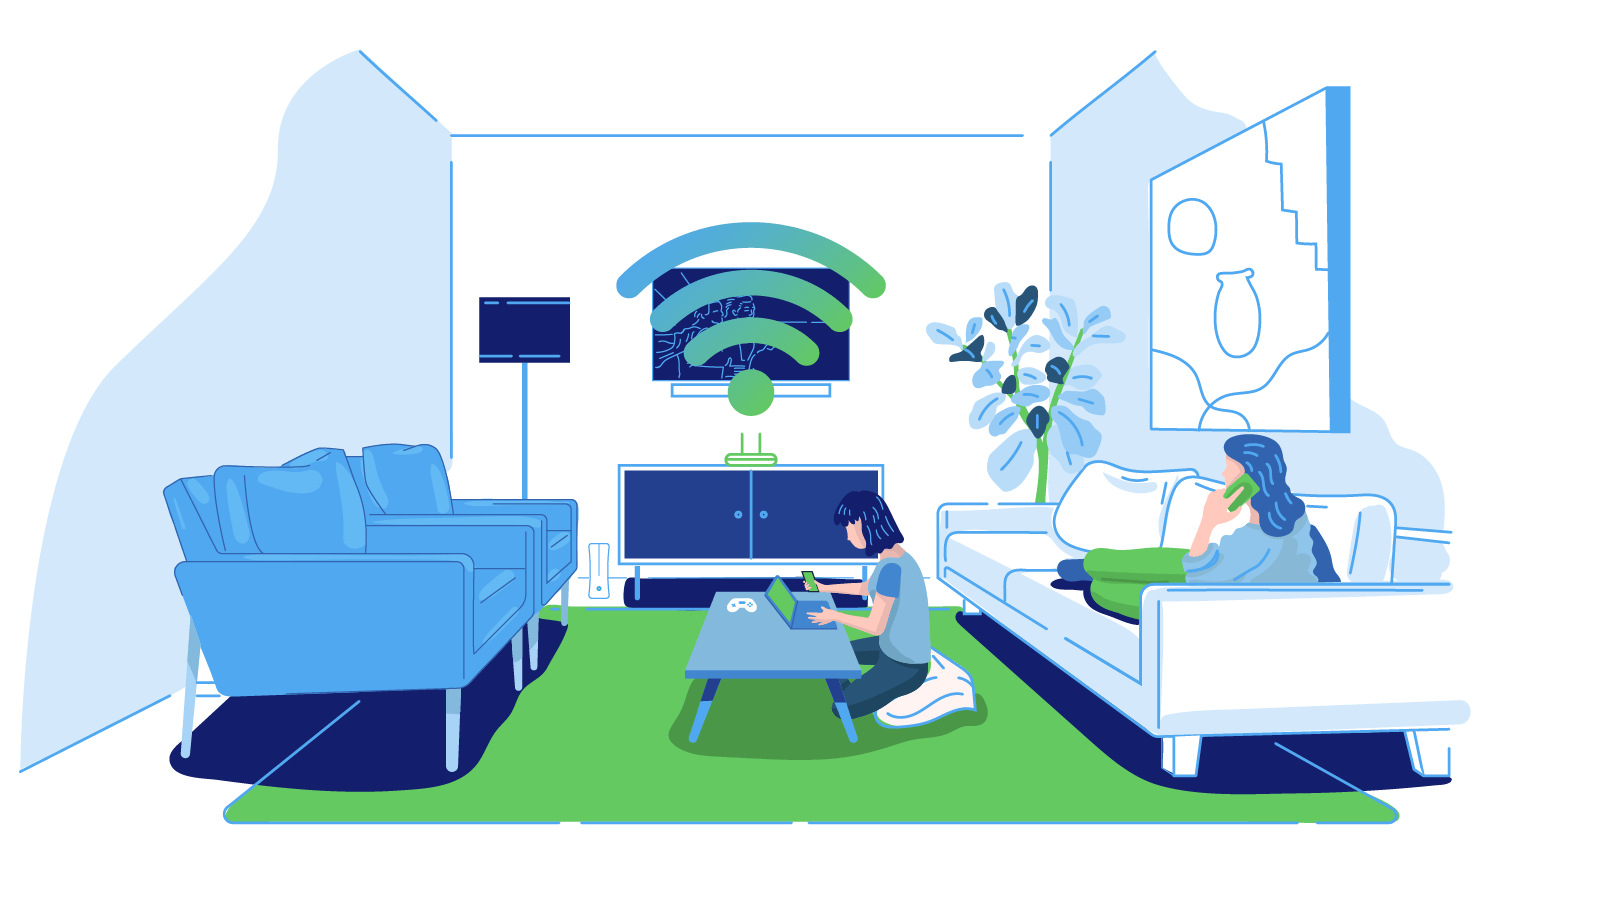 Router Placement Helps Extend Wifi Range